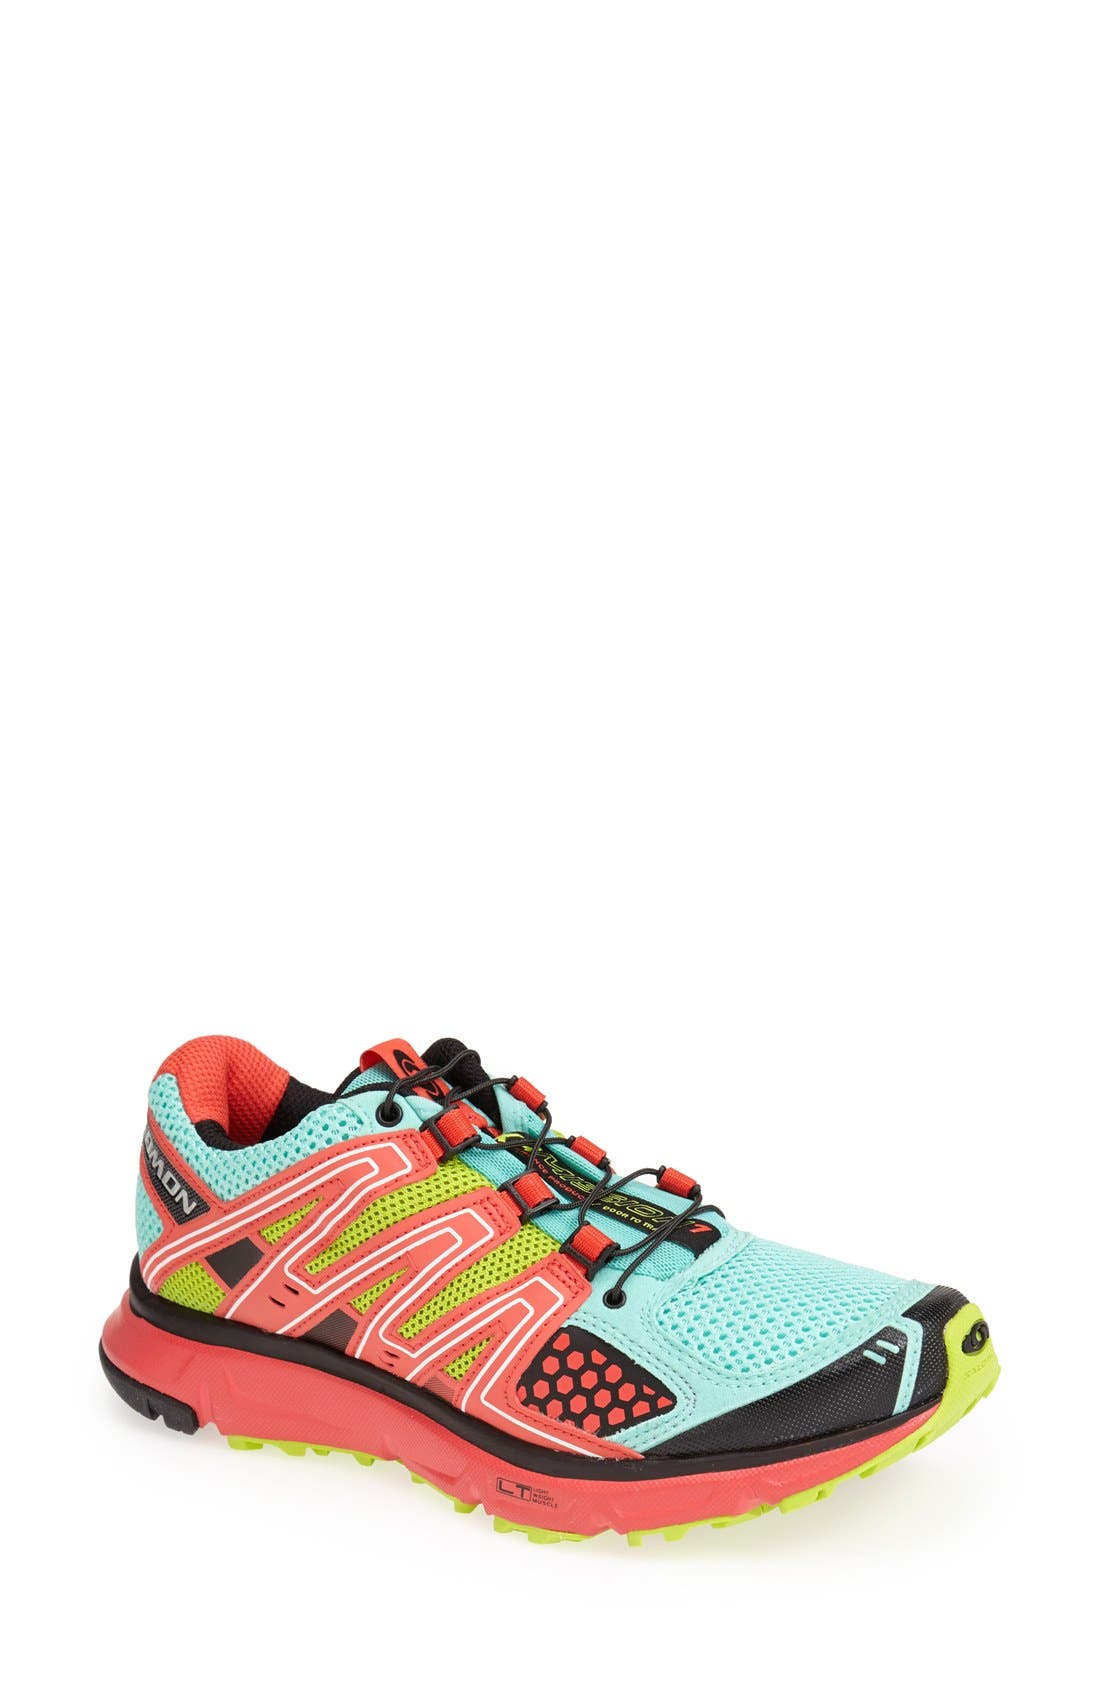 Main Image - Salomon 'XR Mission' Trail Running Shoe (Women)